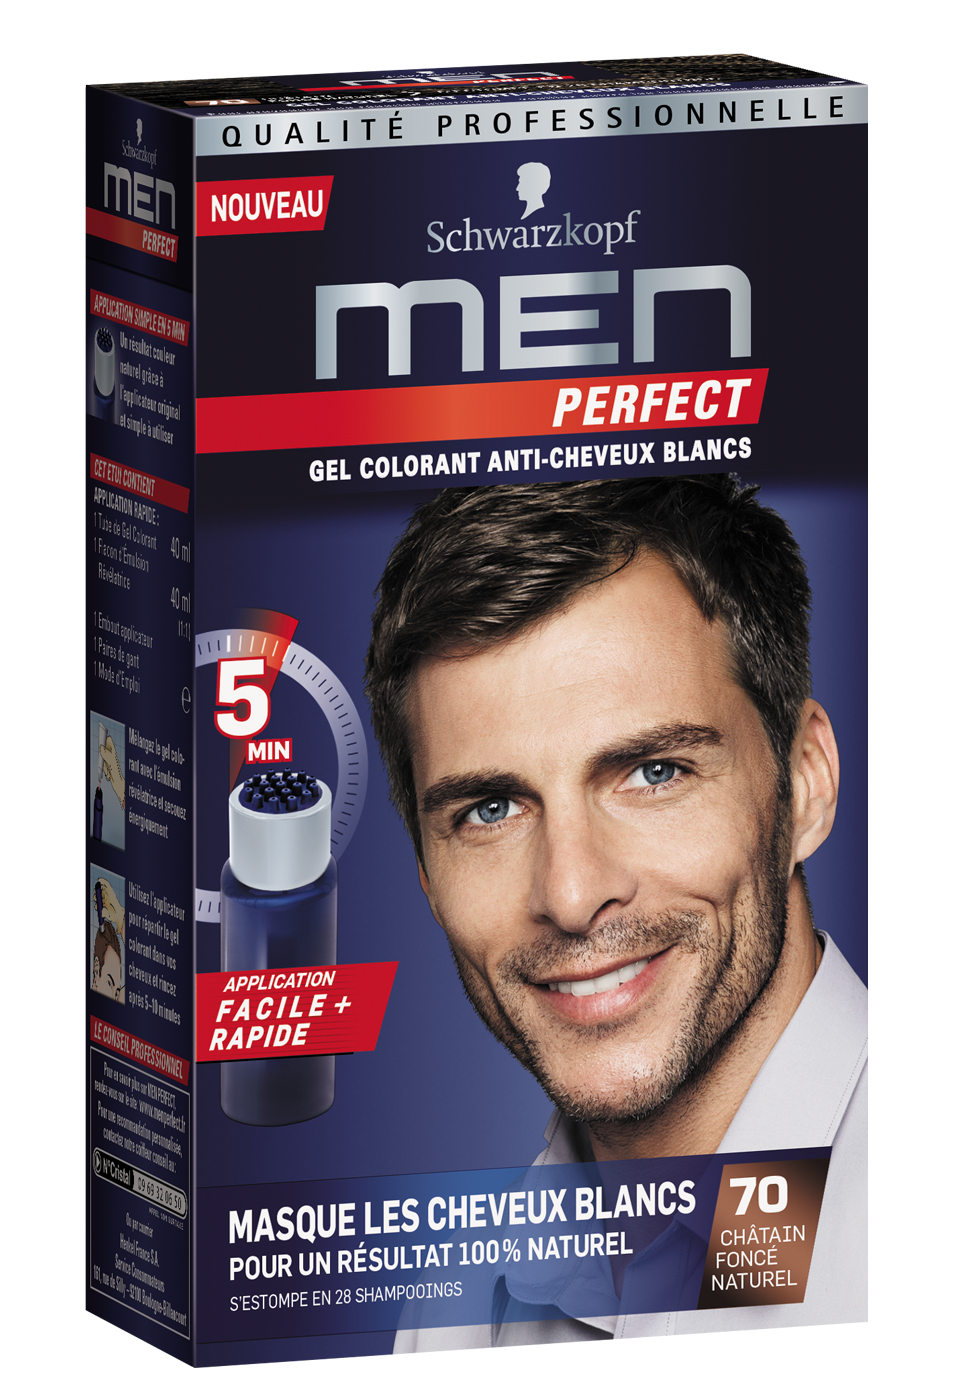 Men Perfect - Gel Colorant anti-cheveux blancs - 70 Châtain Foncé Naturel